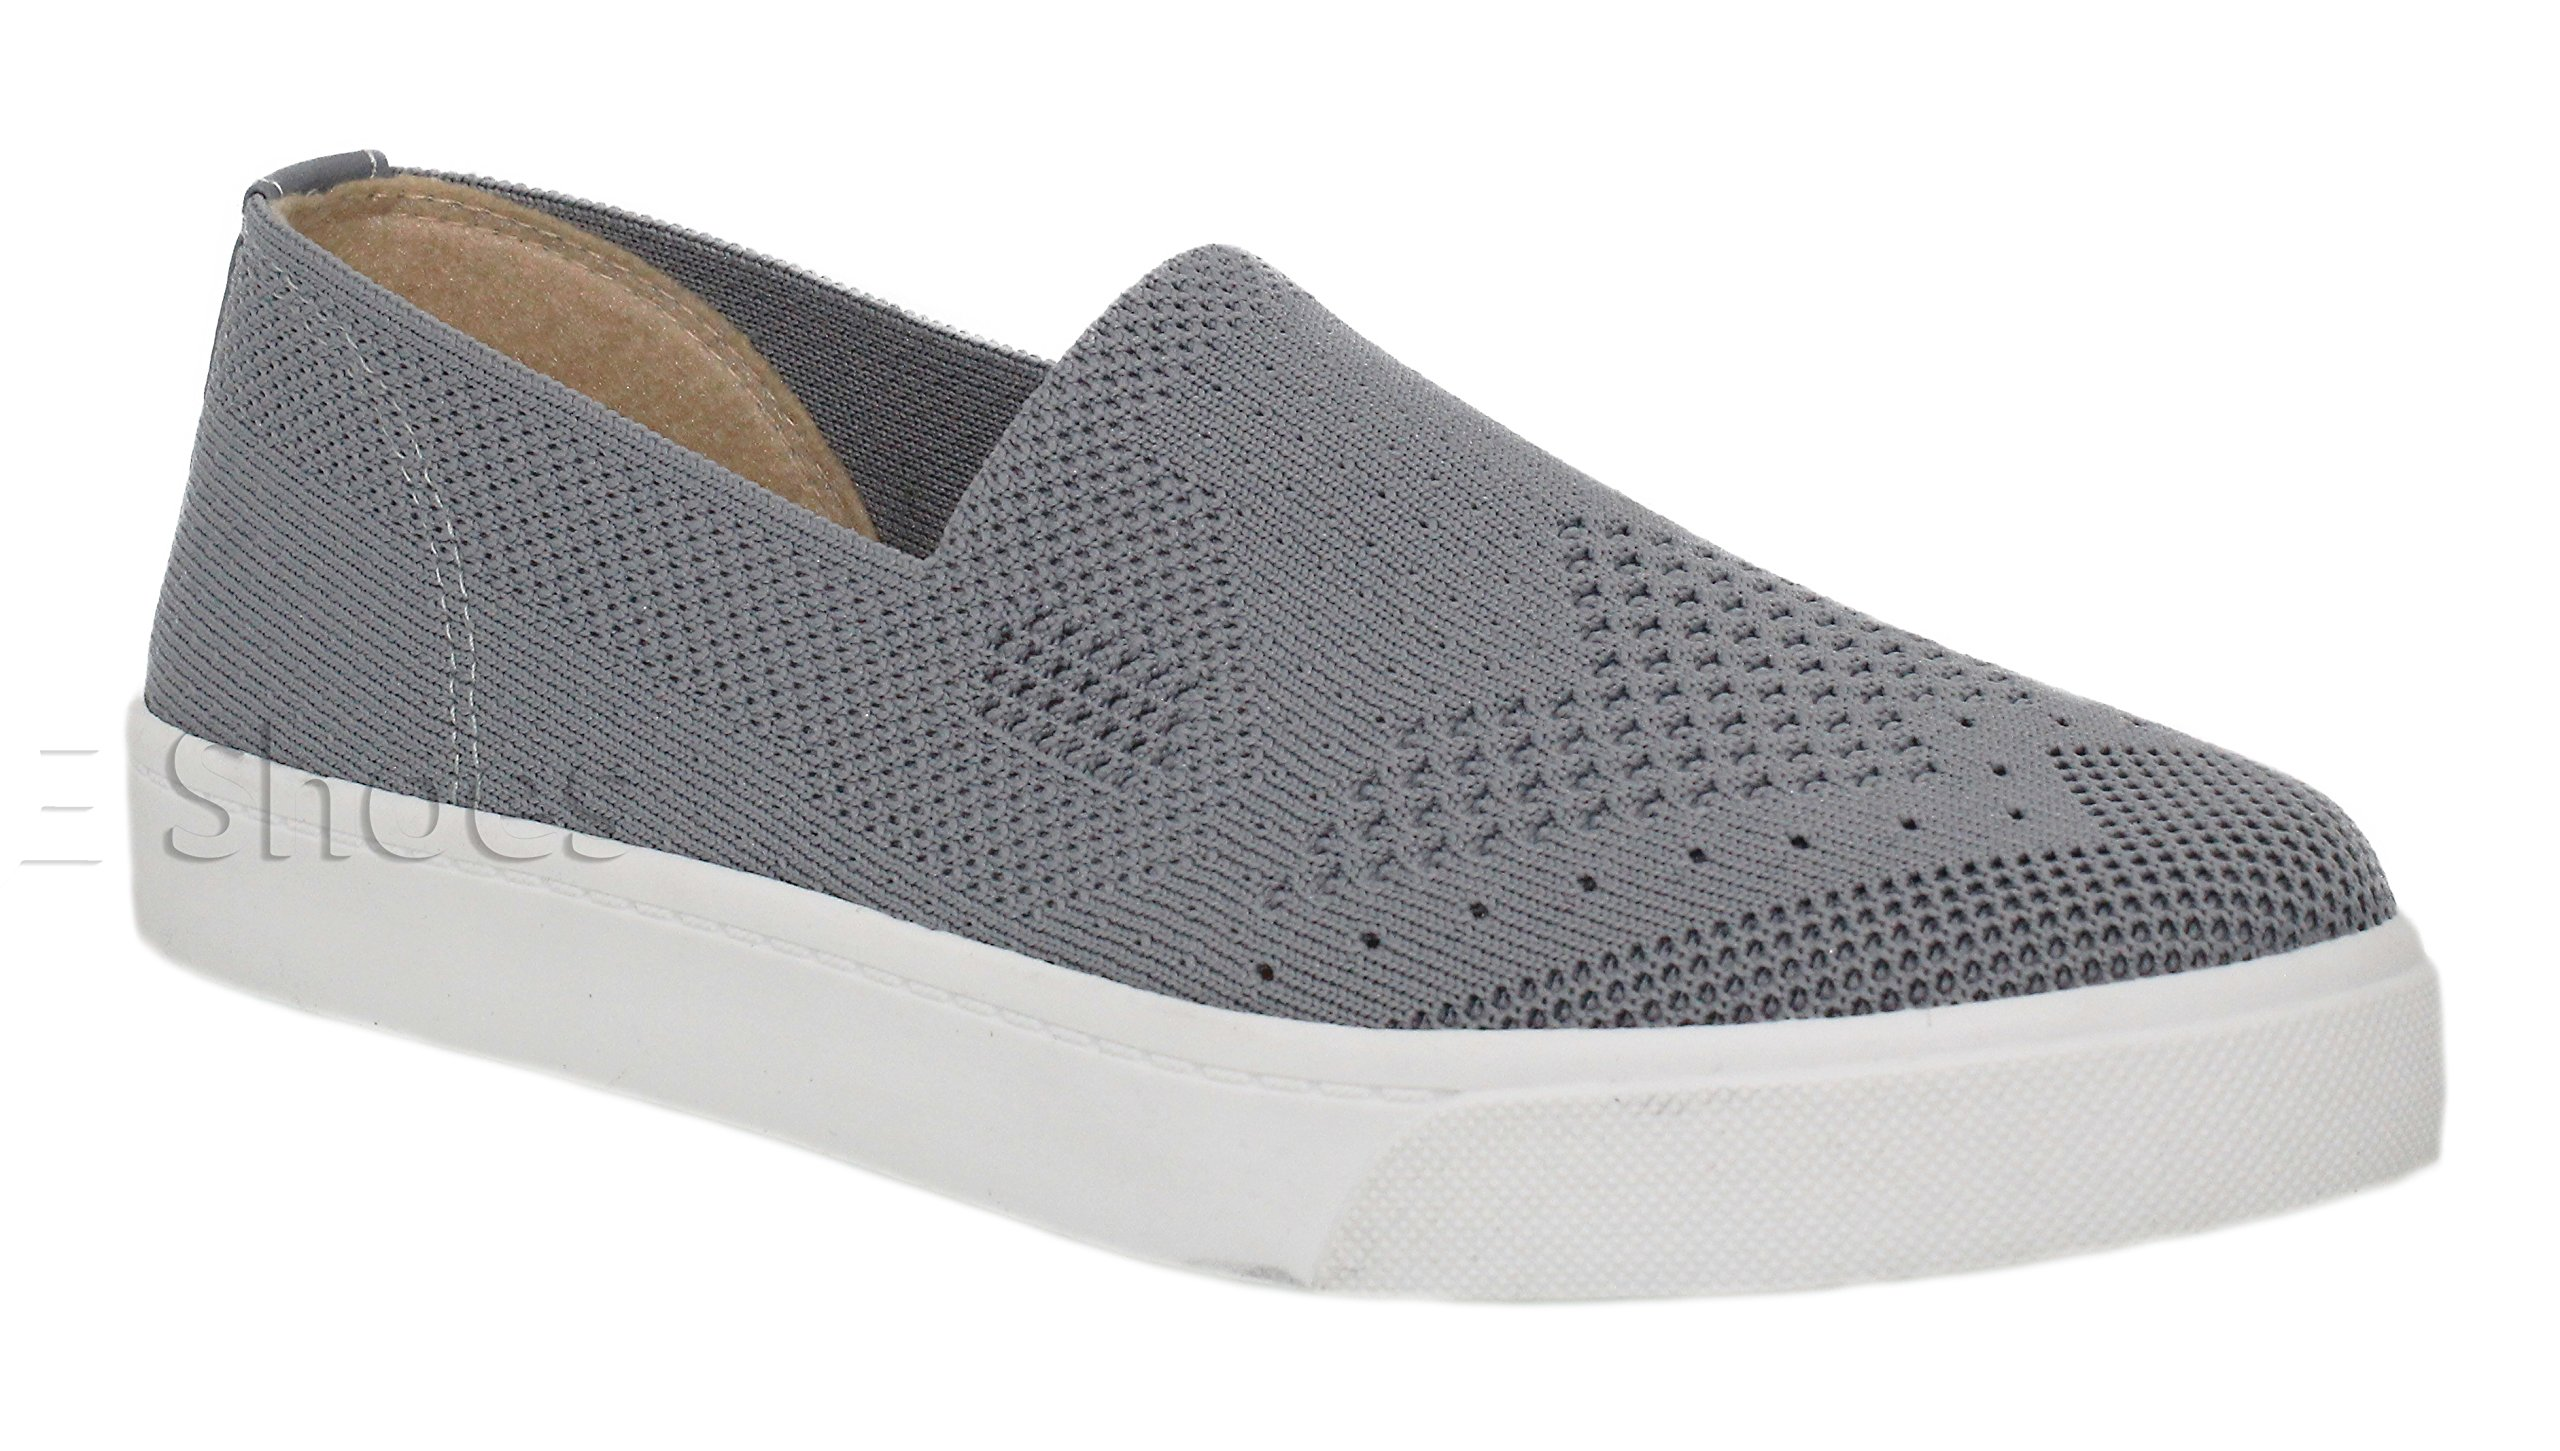 MVE Shoes Women's Fashion Sneakers - Comfort Slip on Shoes - Classic Loafers for Summer, Grey Size 7